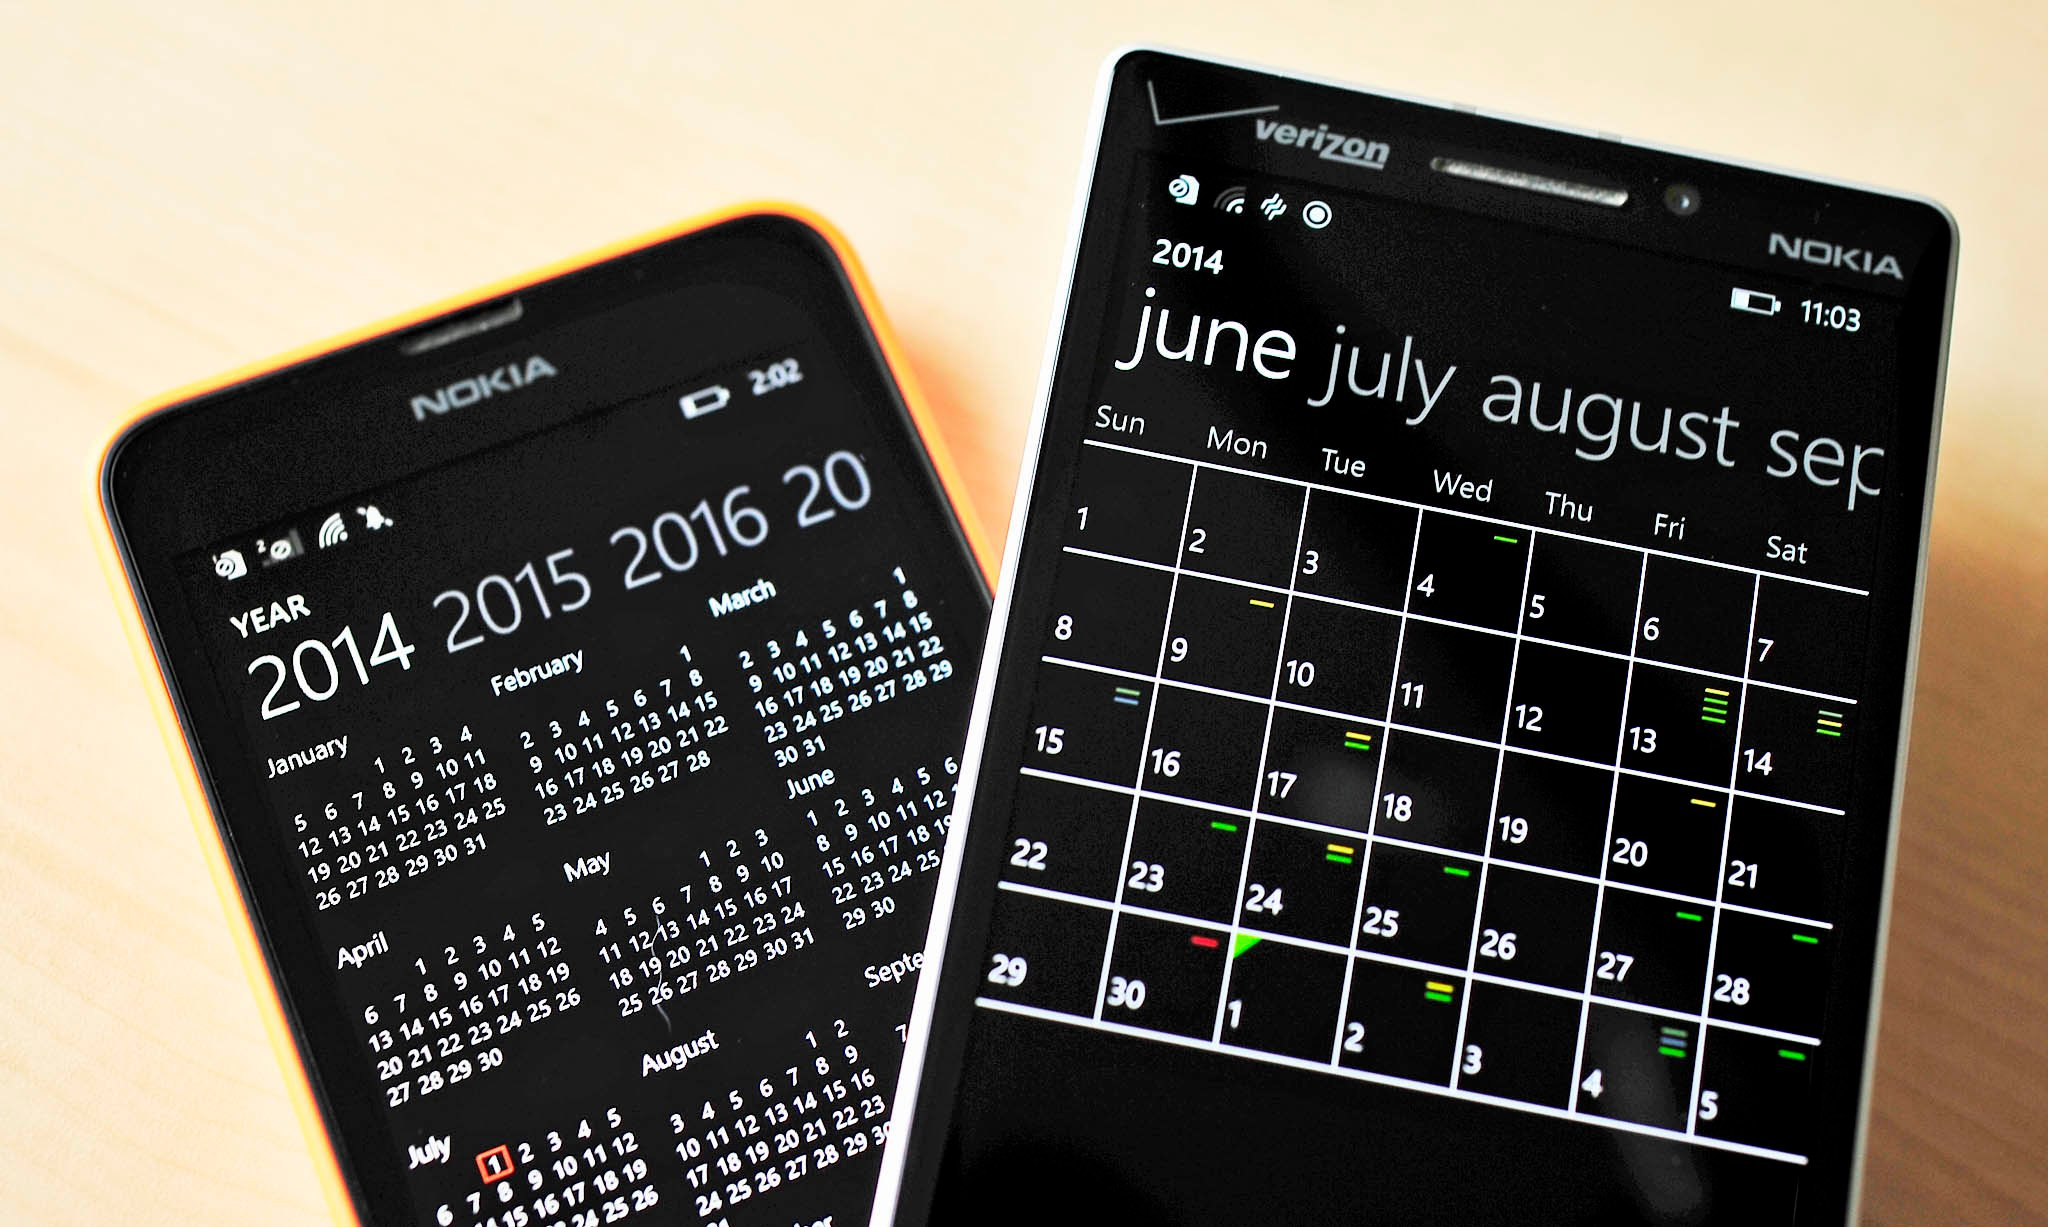 New Calendar Windows Phone 81 Ten Tricks For Checking Your Phone Less Fix For The Botched Calendar App On Windows Phone 81 Is